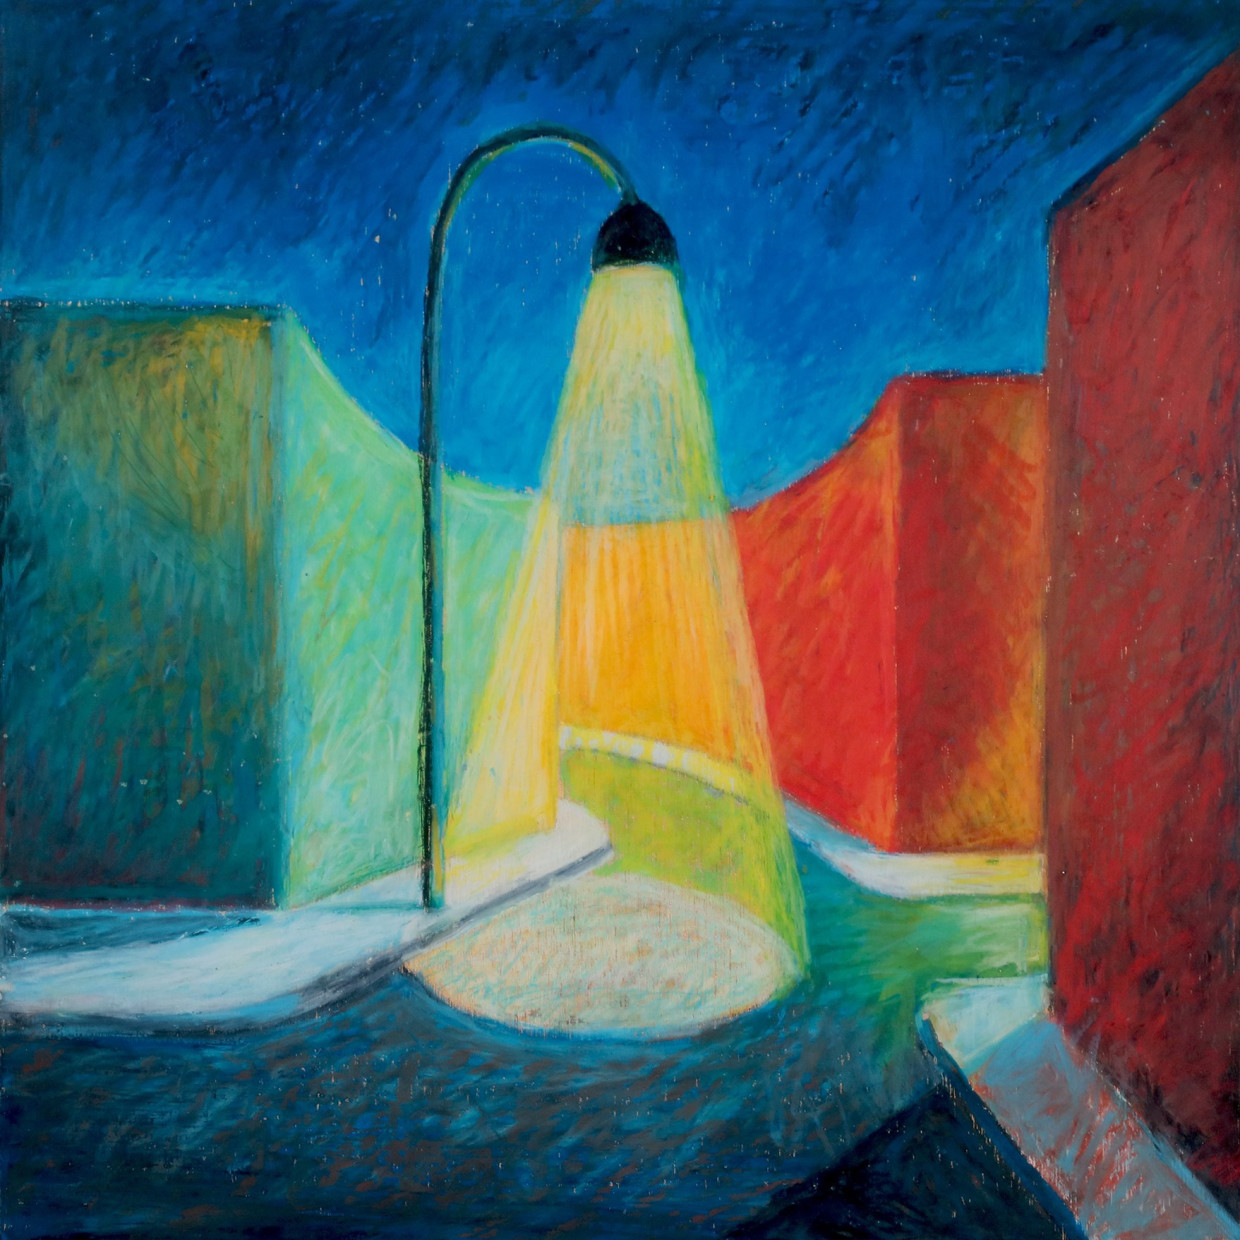 Open now online, Salvo in the 80s: Light and Form